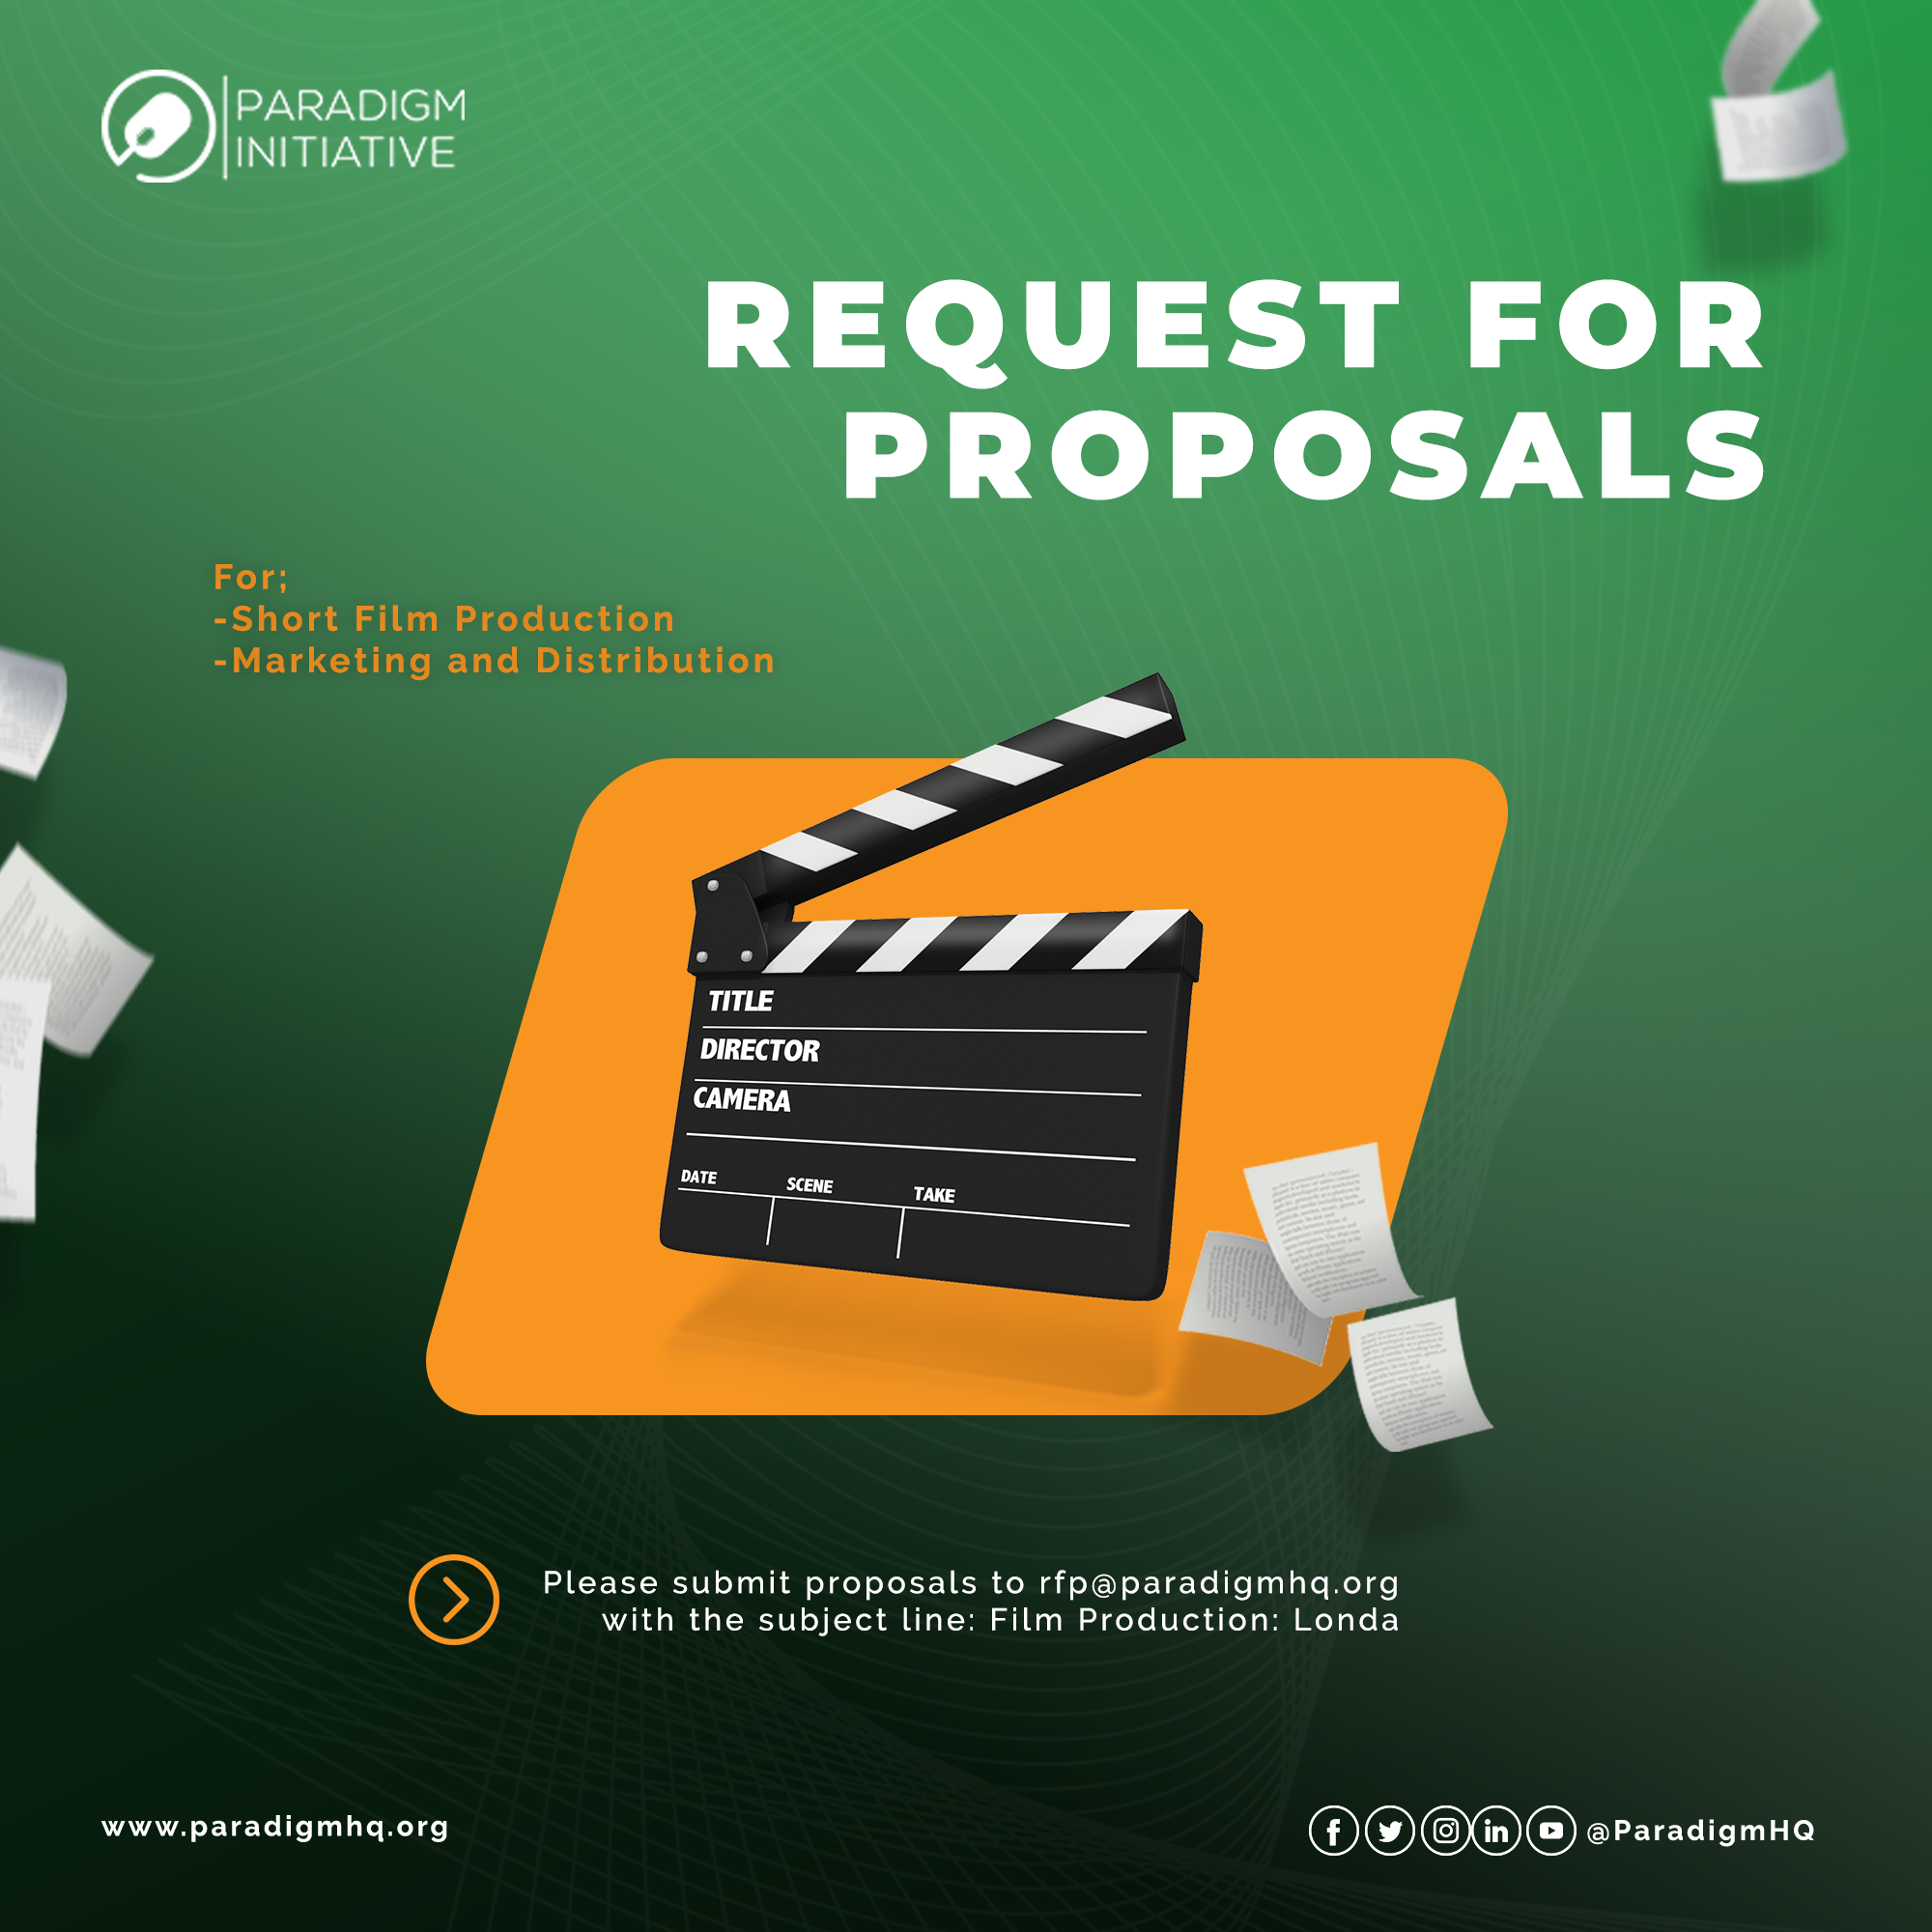 REQUEST FOR PROPOSAL: Production of a Short Film on the State of Digital Rights and Inclusion in Africa